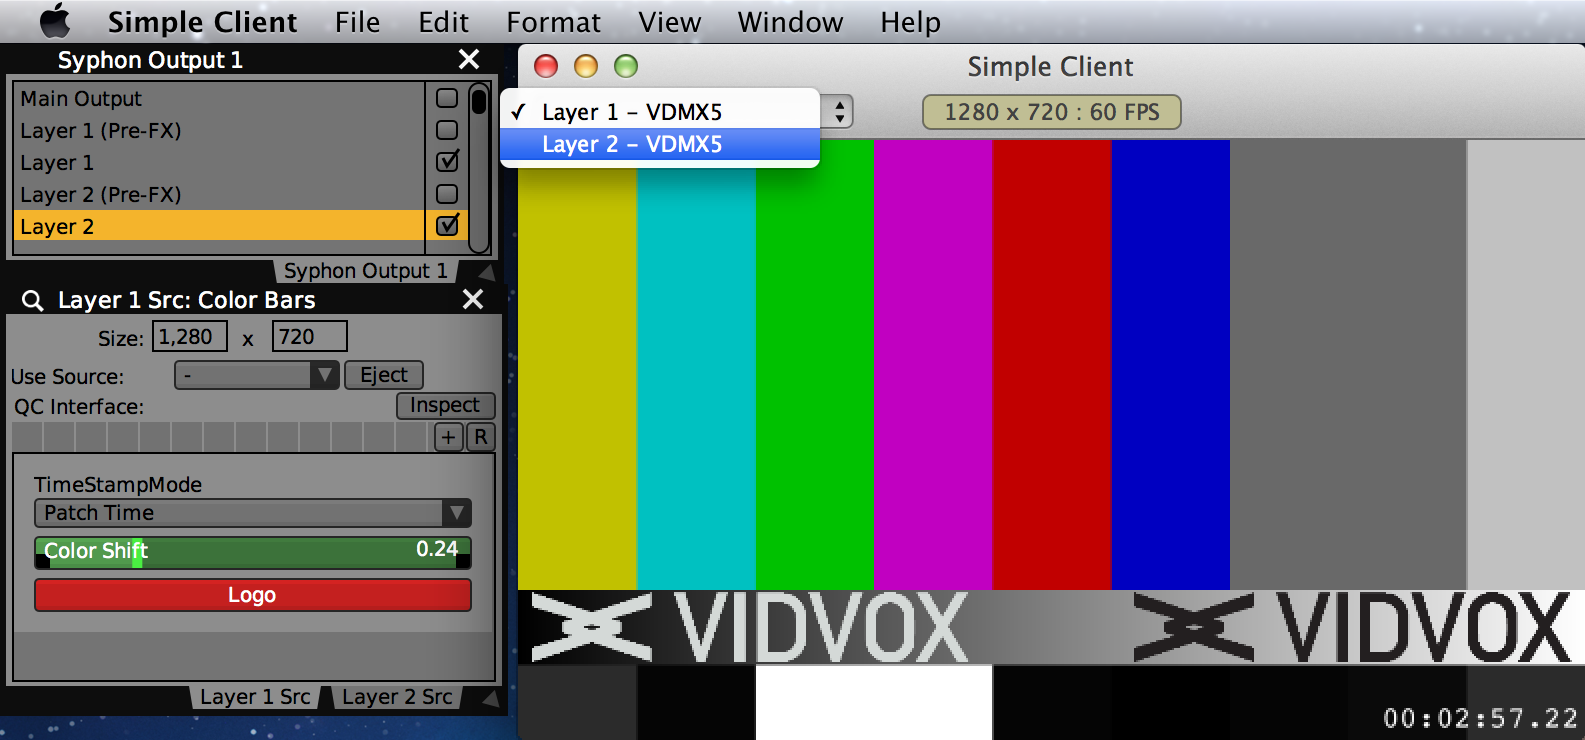 Layer 1 and Layer 2 from VDMX available as sources in the Simple Client application.